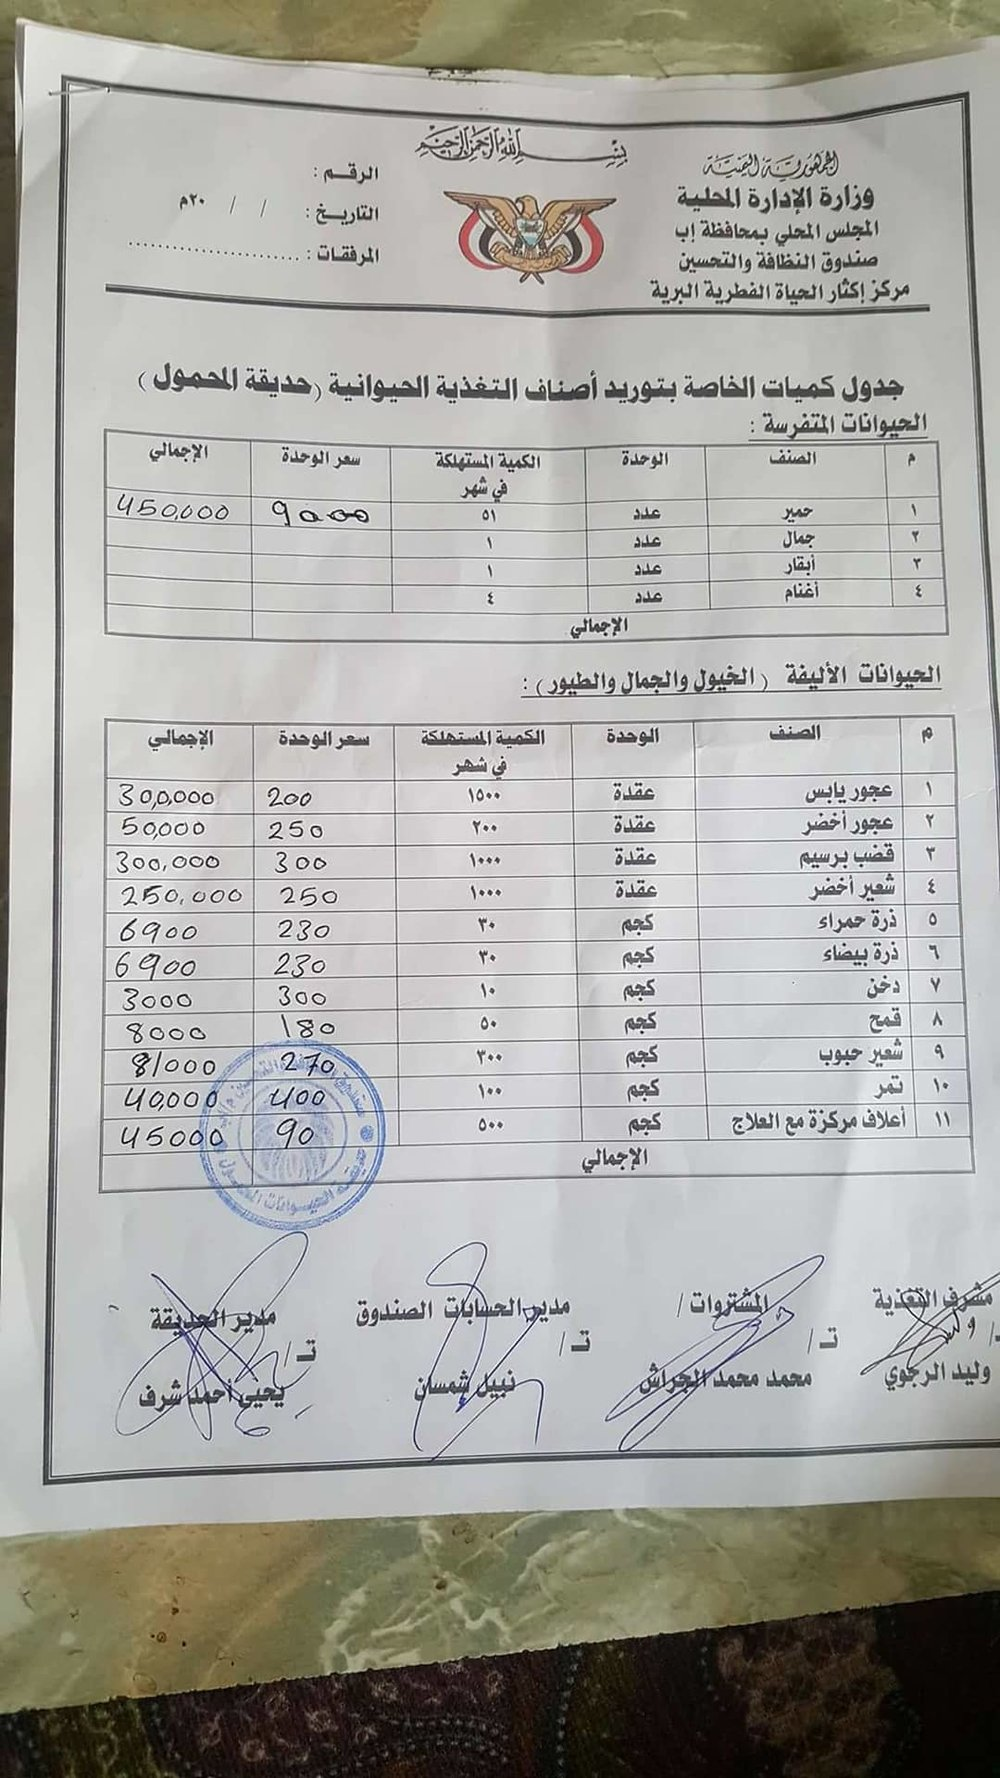 Ibb Zoo CIF IBB Invoice supplies 1 month for OWAP-AR Broderick Rescues 2nd Jan 2018.jpg